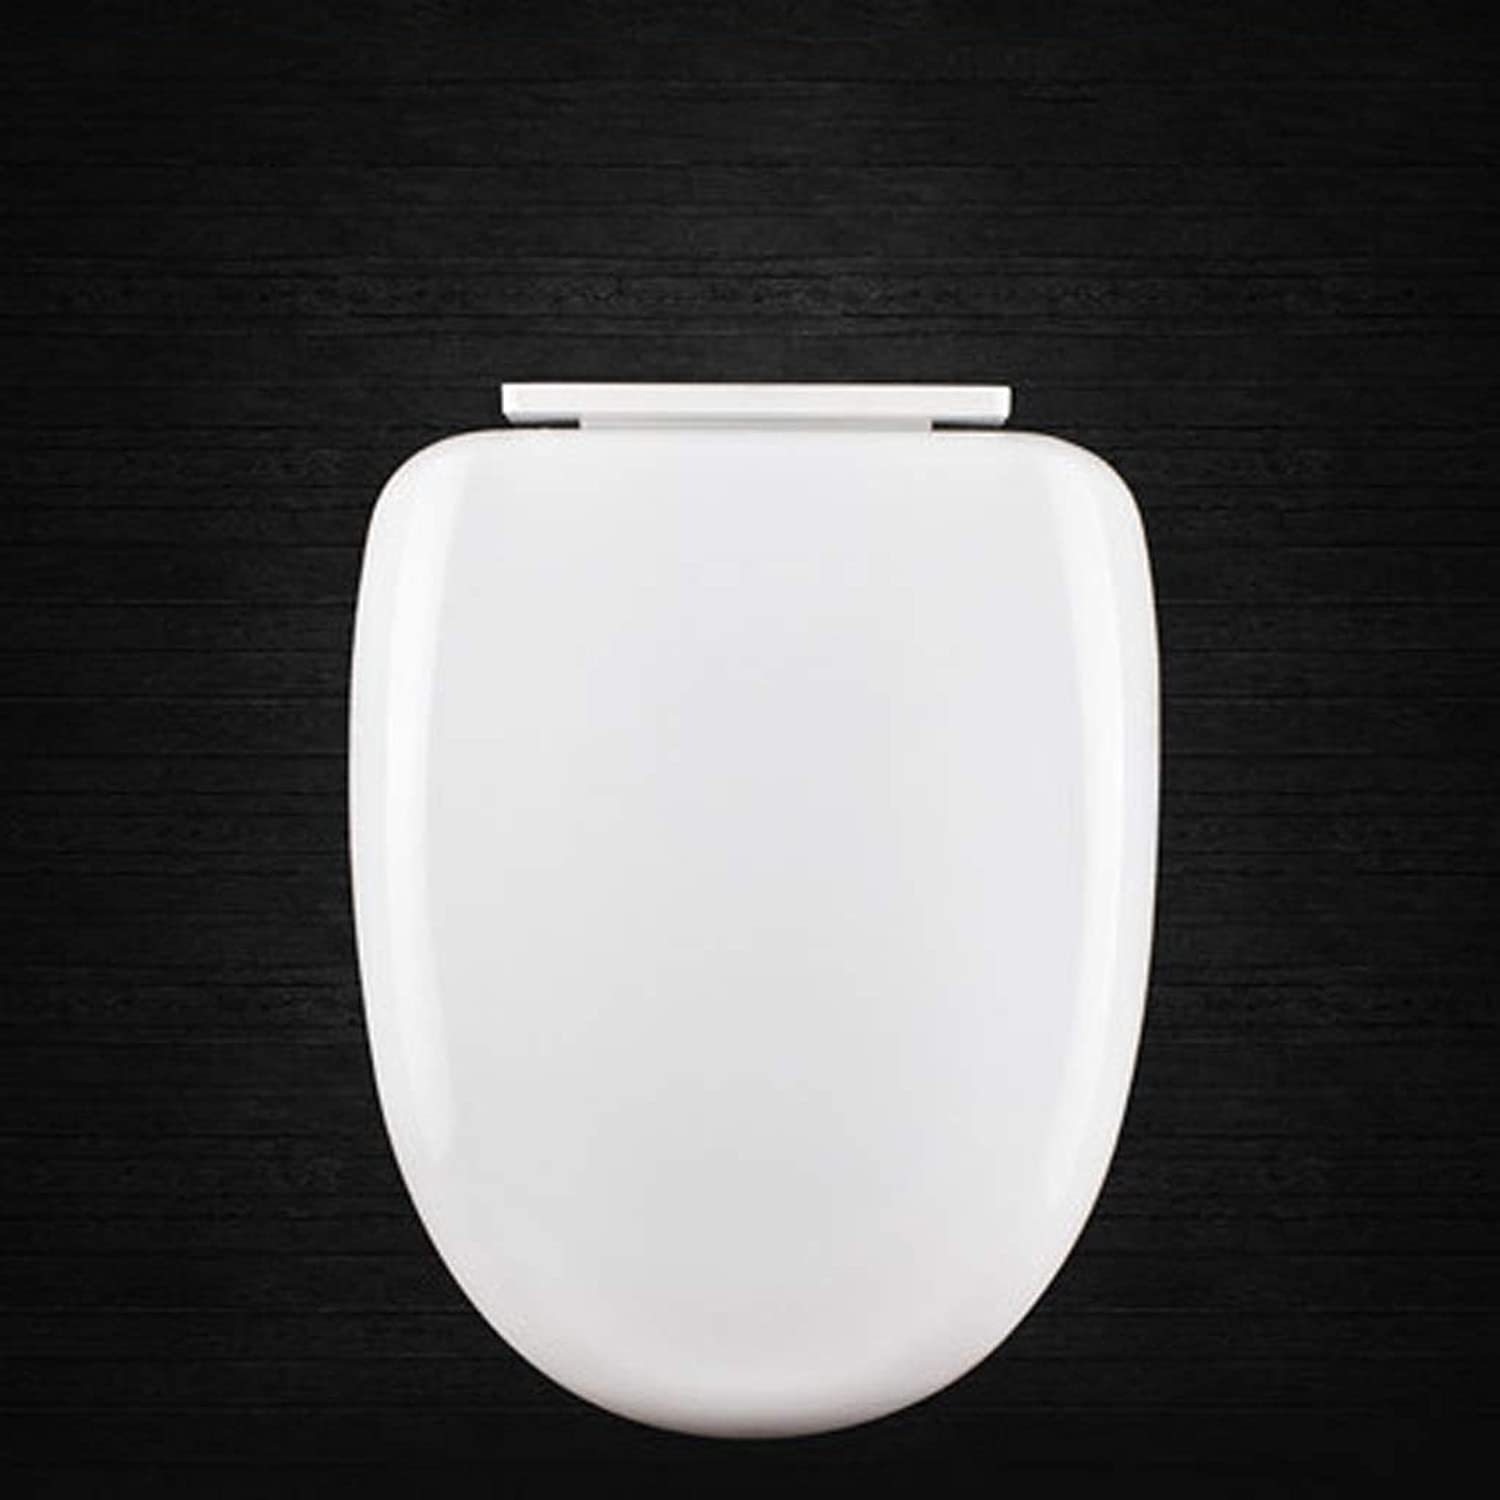 GLJJQMY Toilet Ring Universal Thickened Toilet Cover Down Old Cover Toilet cover